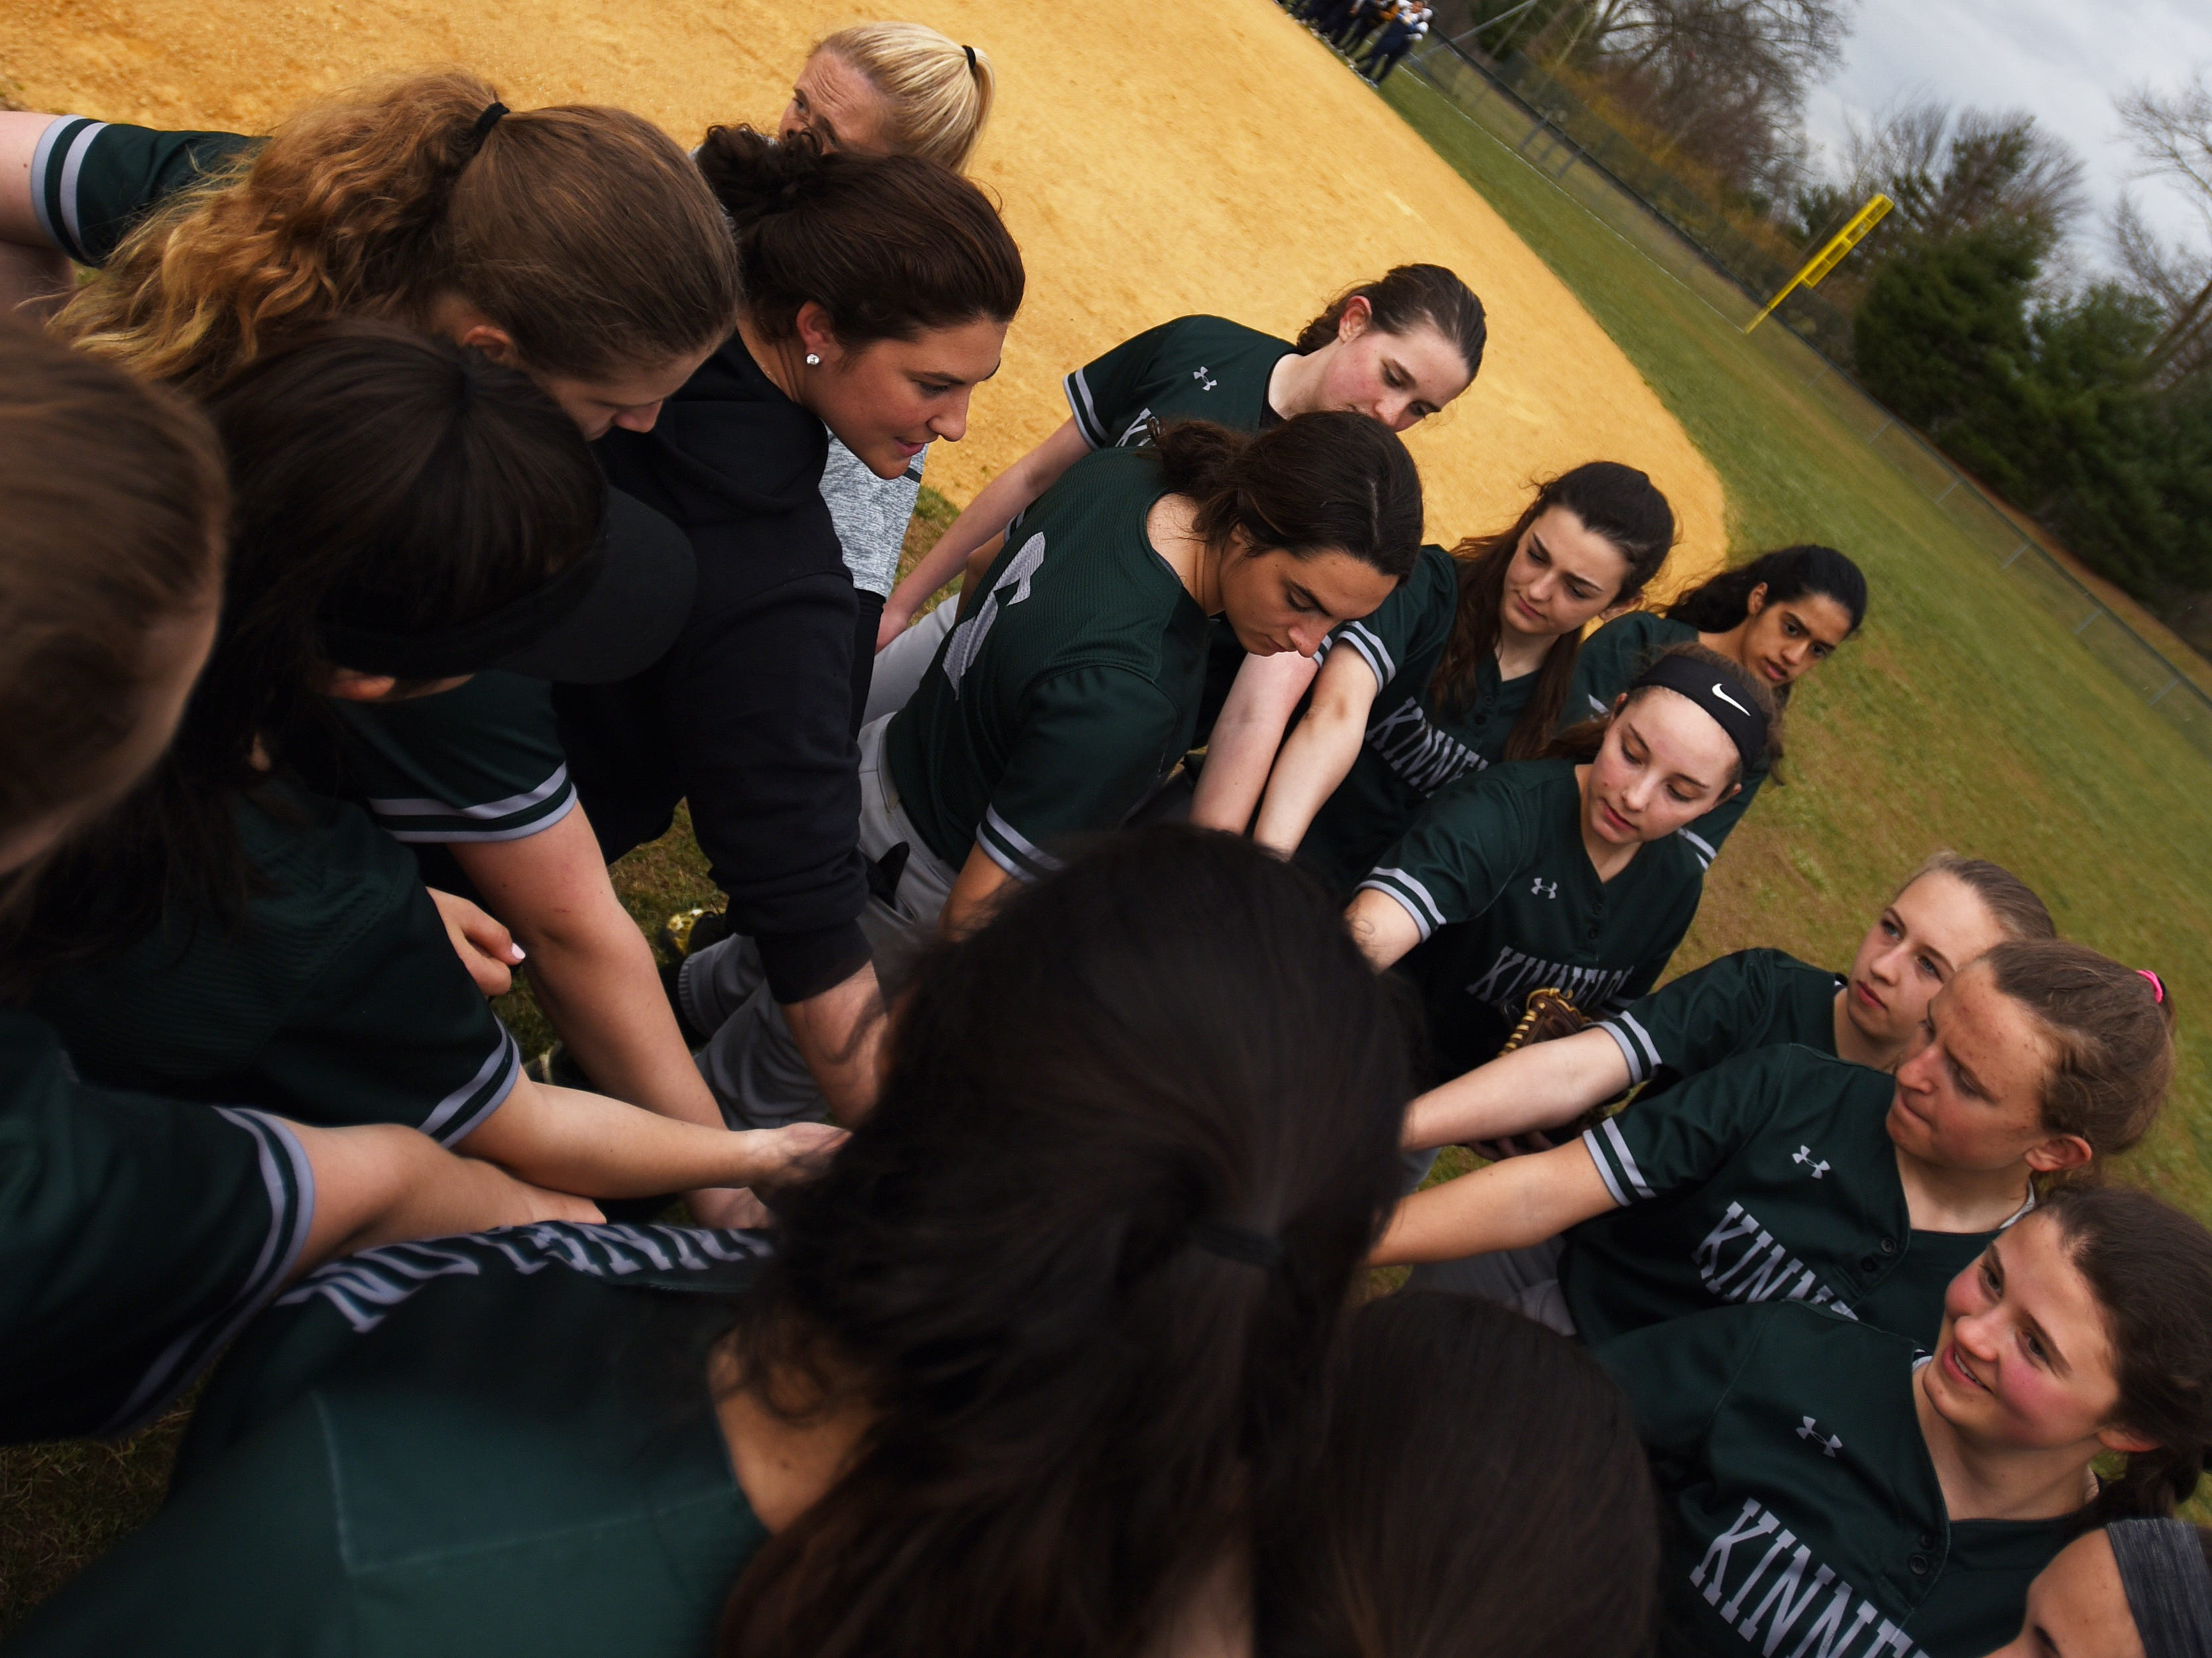 Pequannock at Kinnelon softball game in Kinnelon on Friday April 12, 2019. The Kinnelon team join in a huddle after the game.